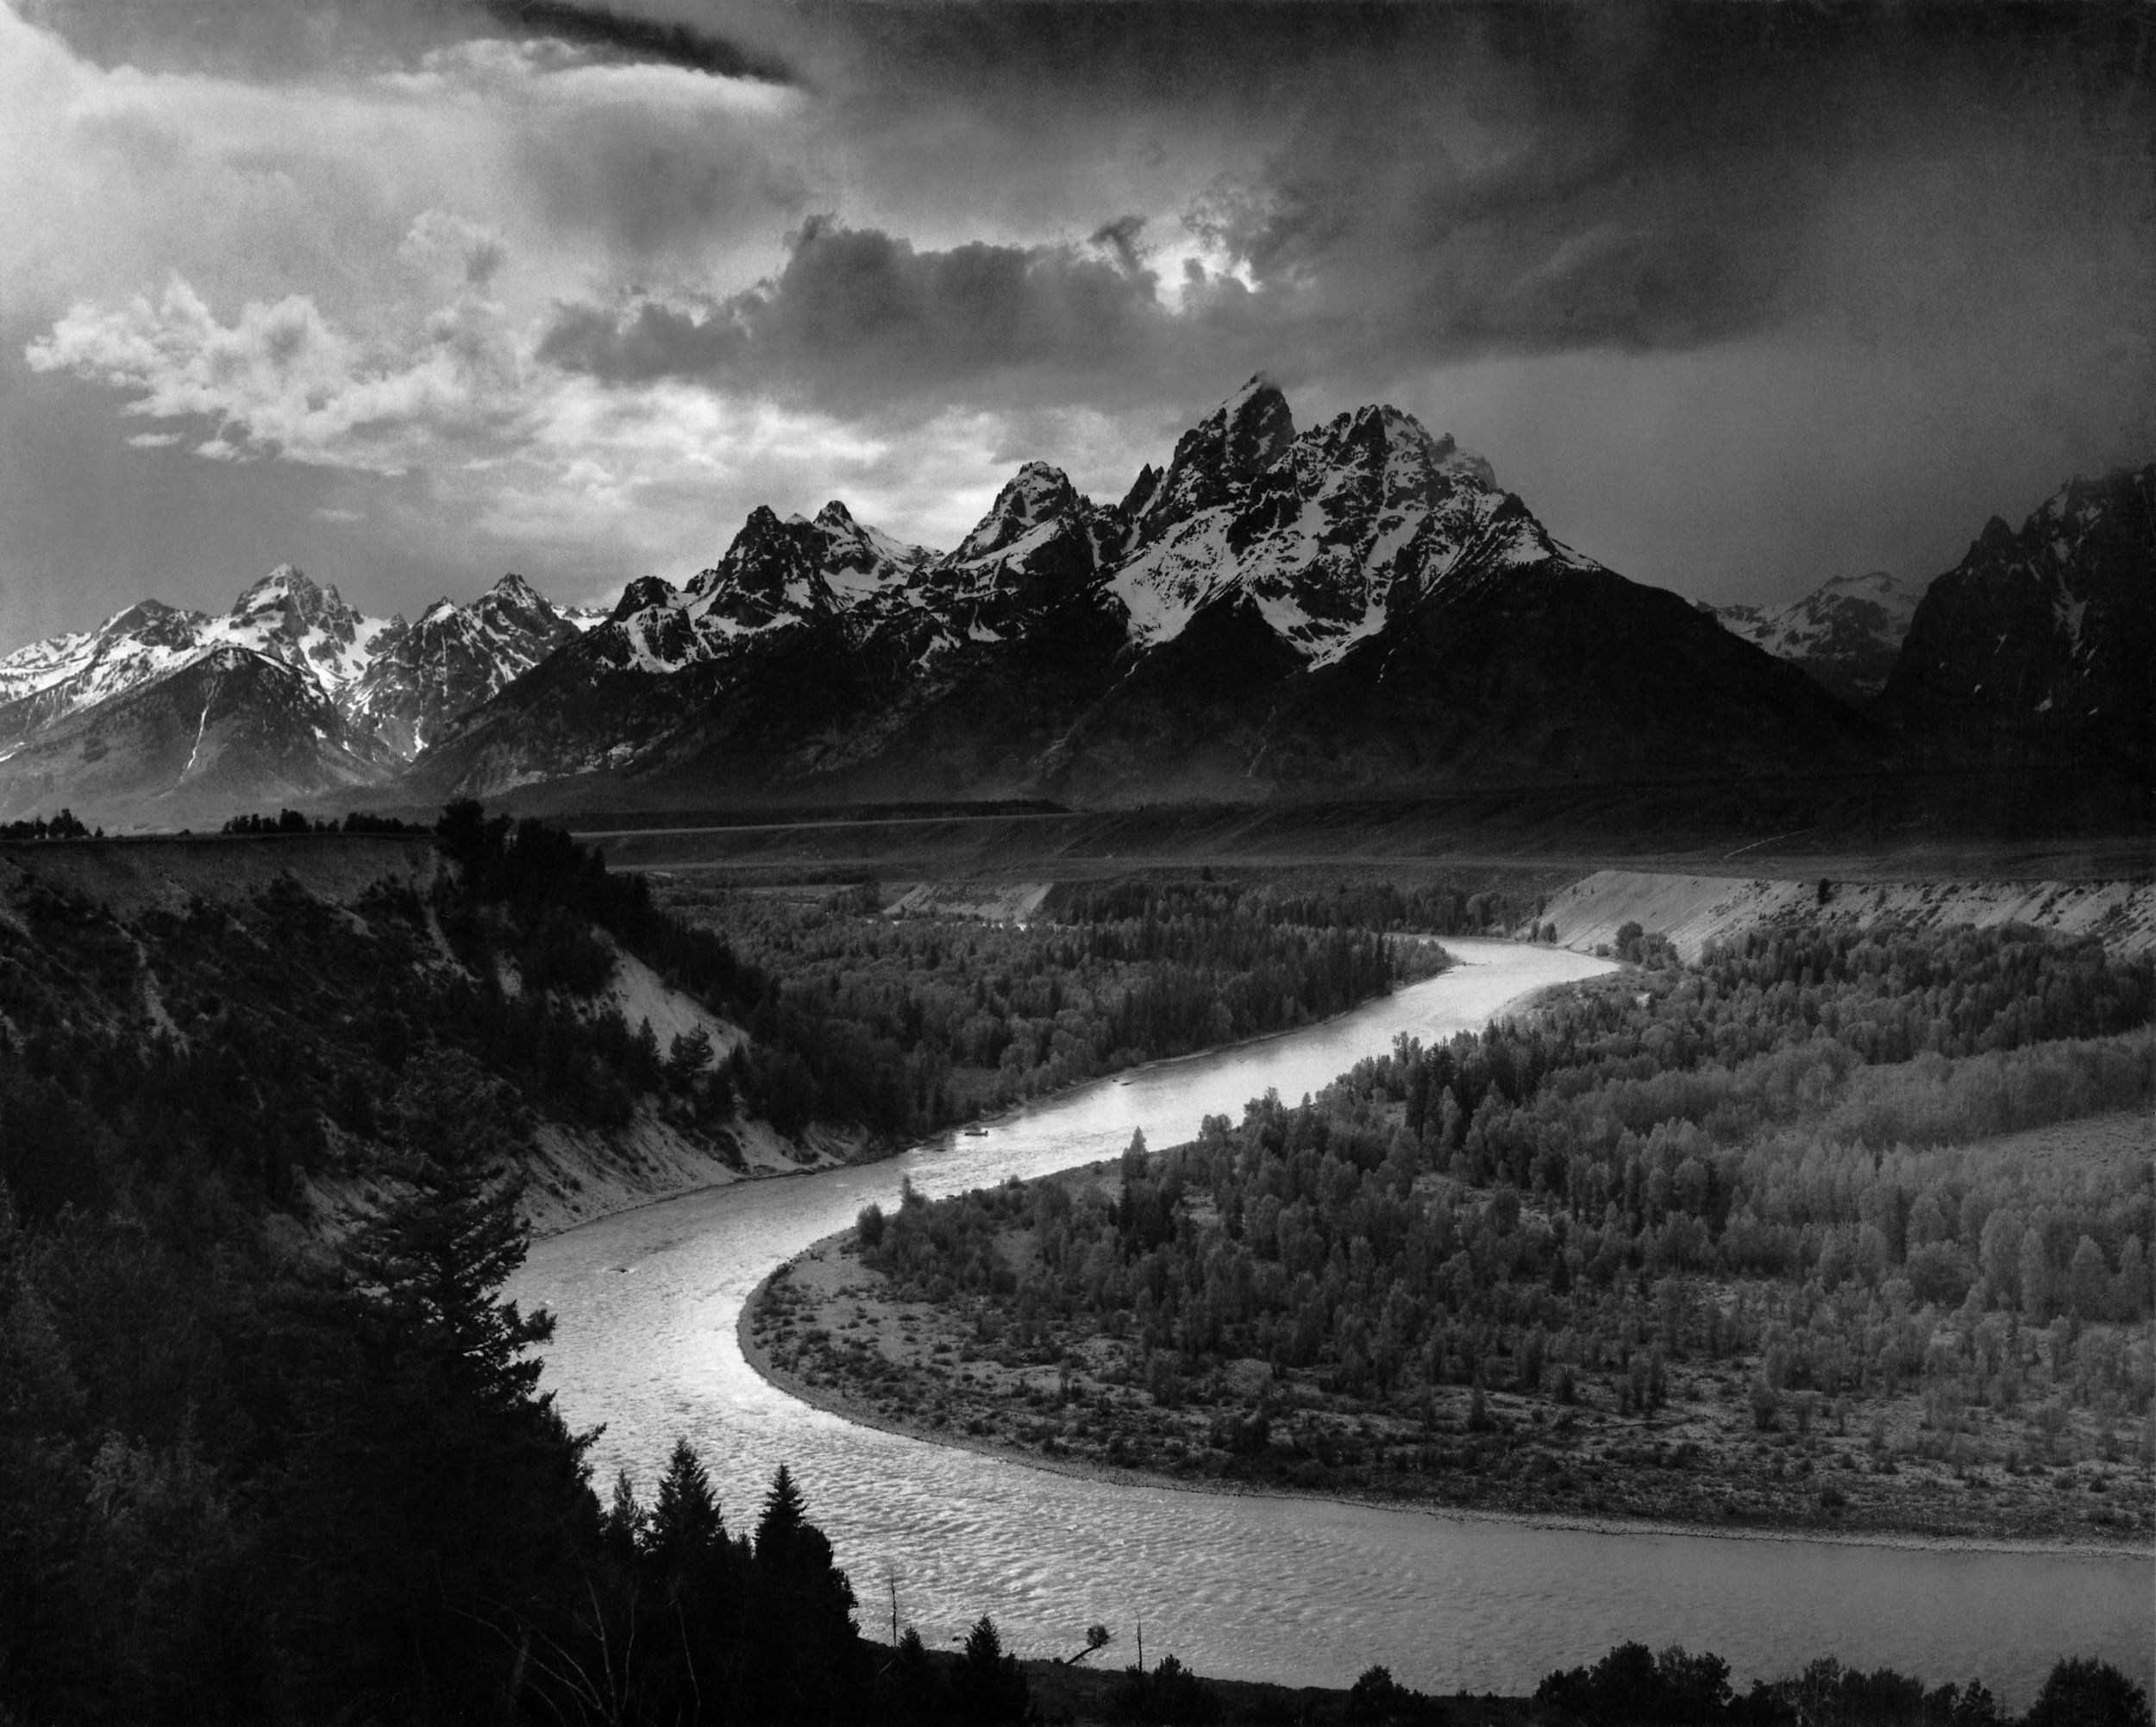 Ansel Adams'  The Tetons and the Snake River